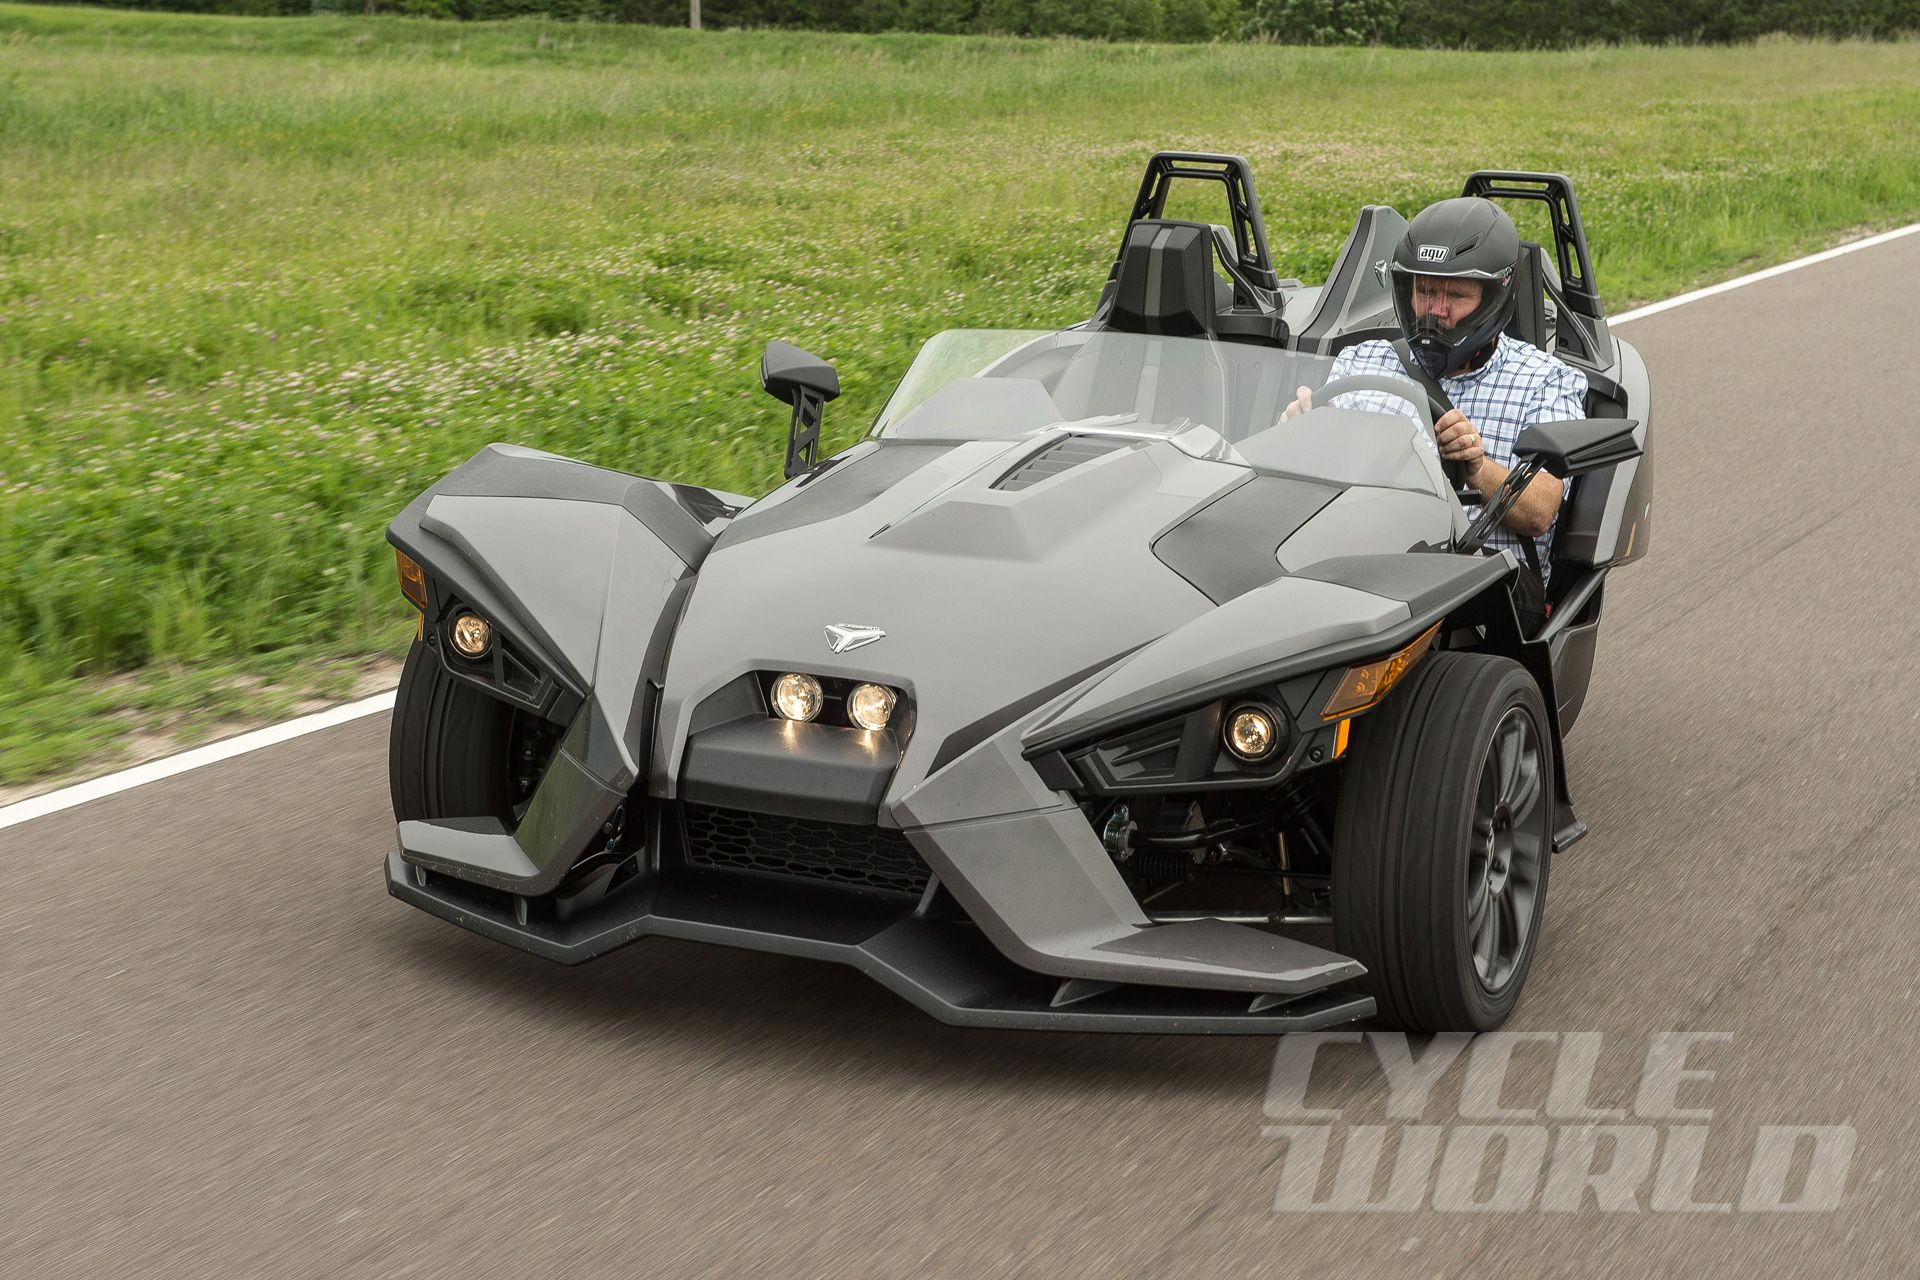 cycle world 2015 polaris slingshot first ride polaris slingshot polaris pinterest. Black Bedroom Furniture Sets. Home Design Ideas